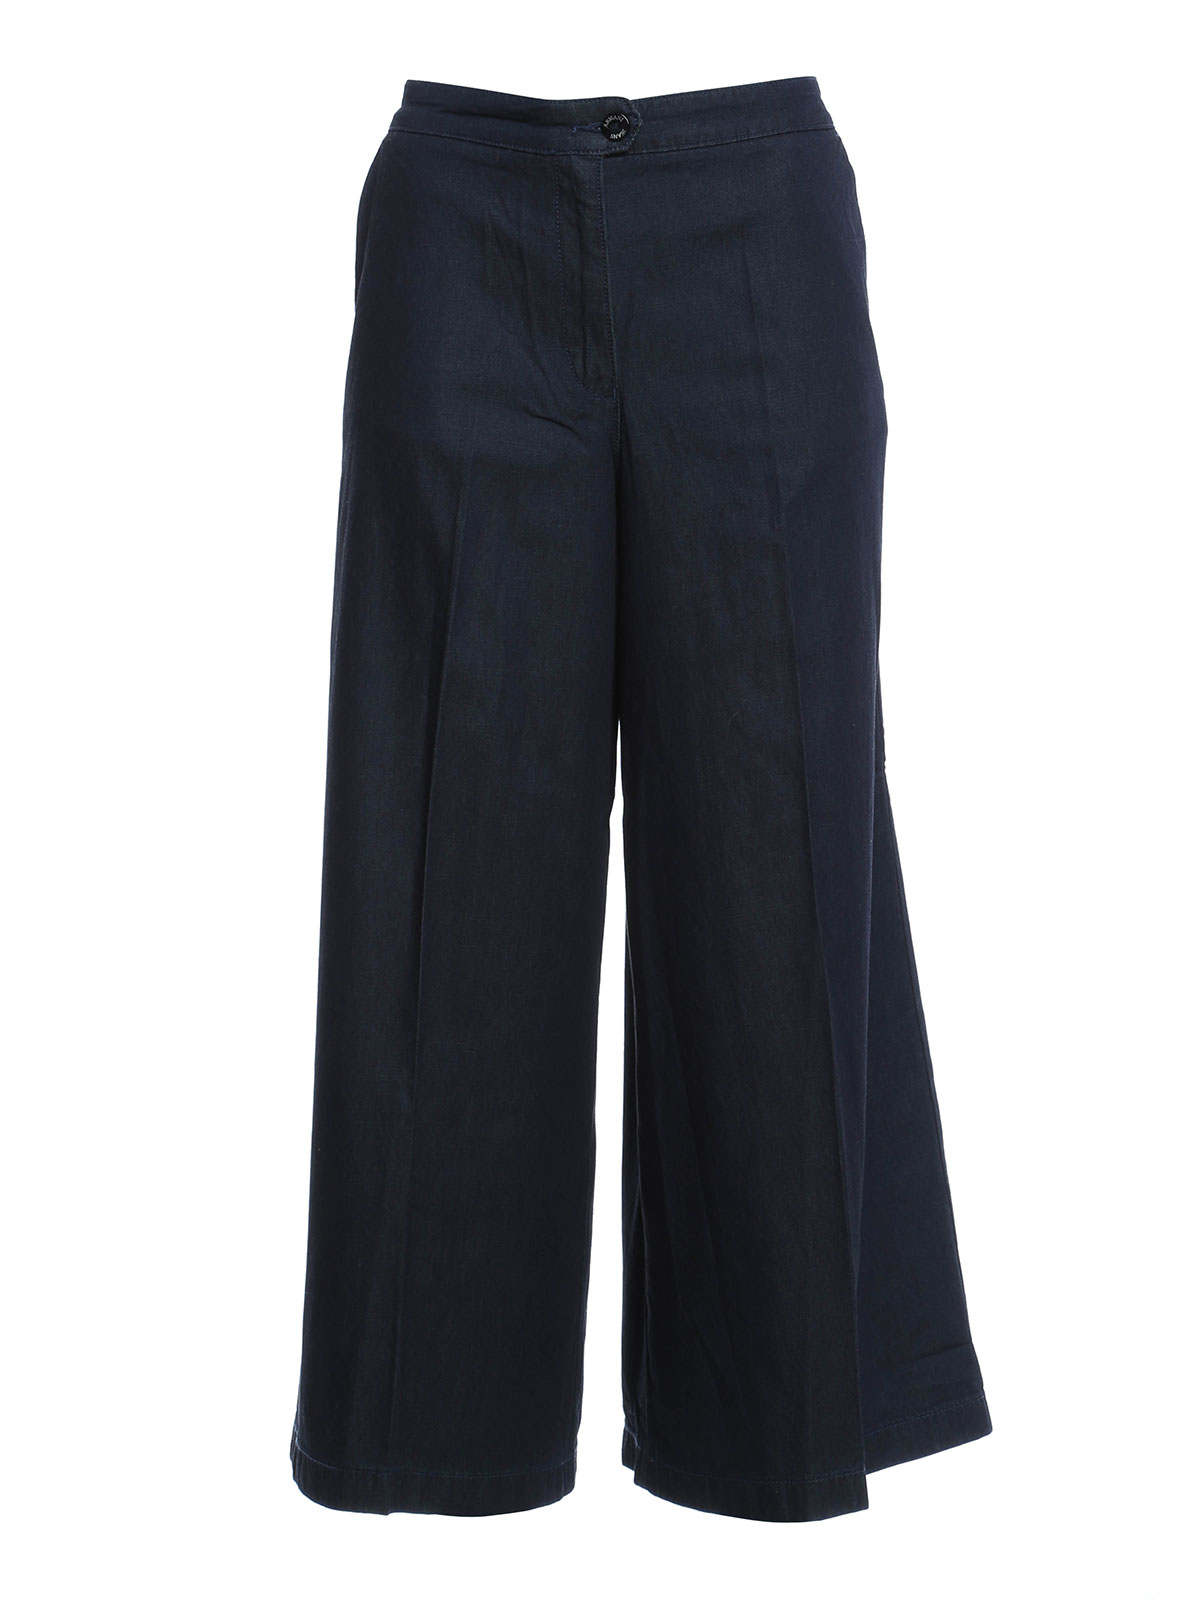 Chambray culottes by armani jeans casual trousers ikrix for Chambray jeans